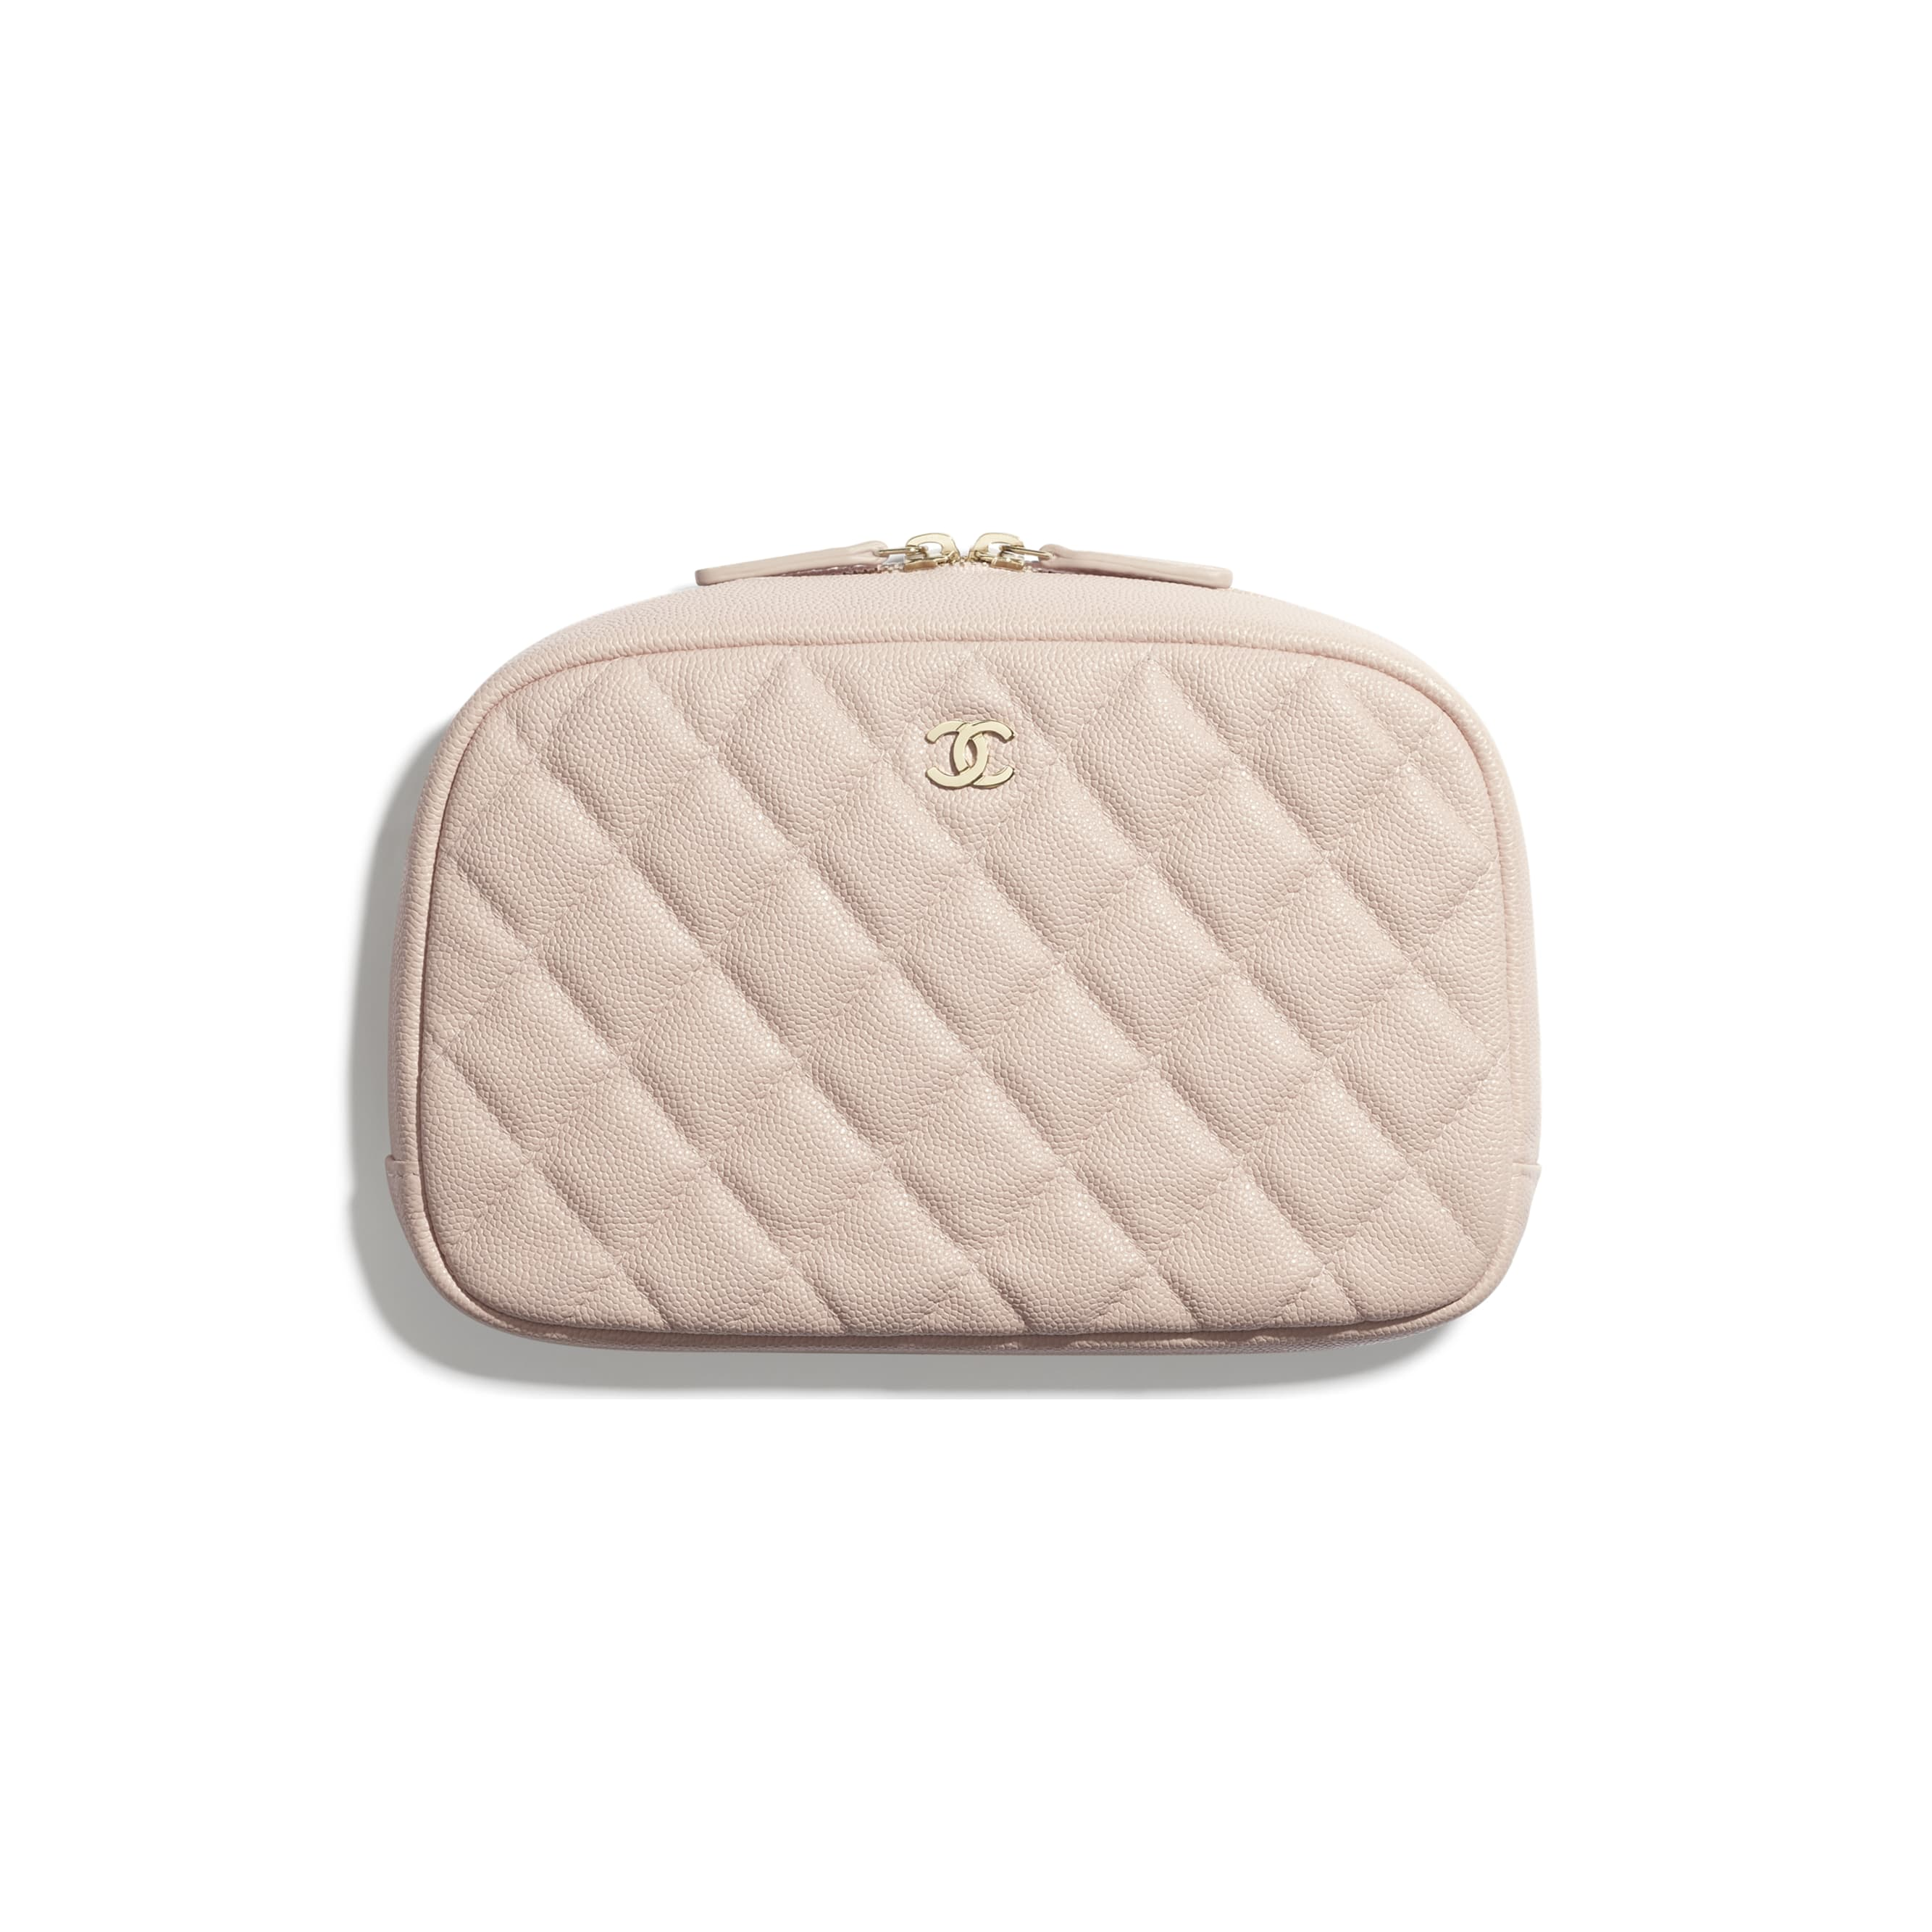 Classic Case - Pale Pink - Grained Calfskin & Gold-Tone Metal - CHANEL - Default view - see standard sized version